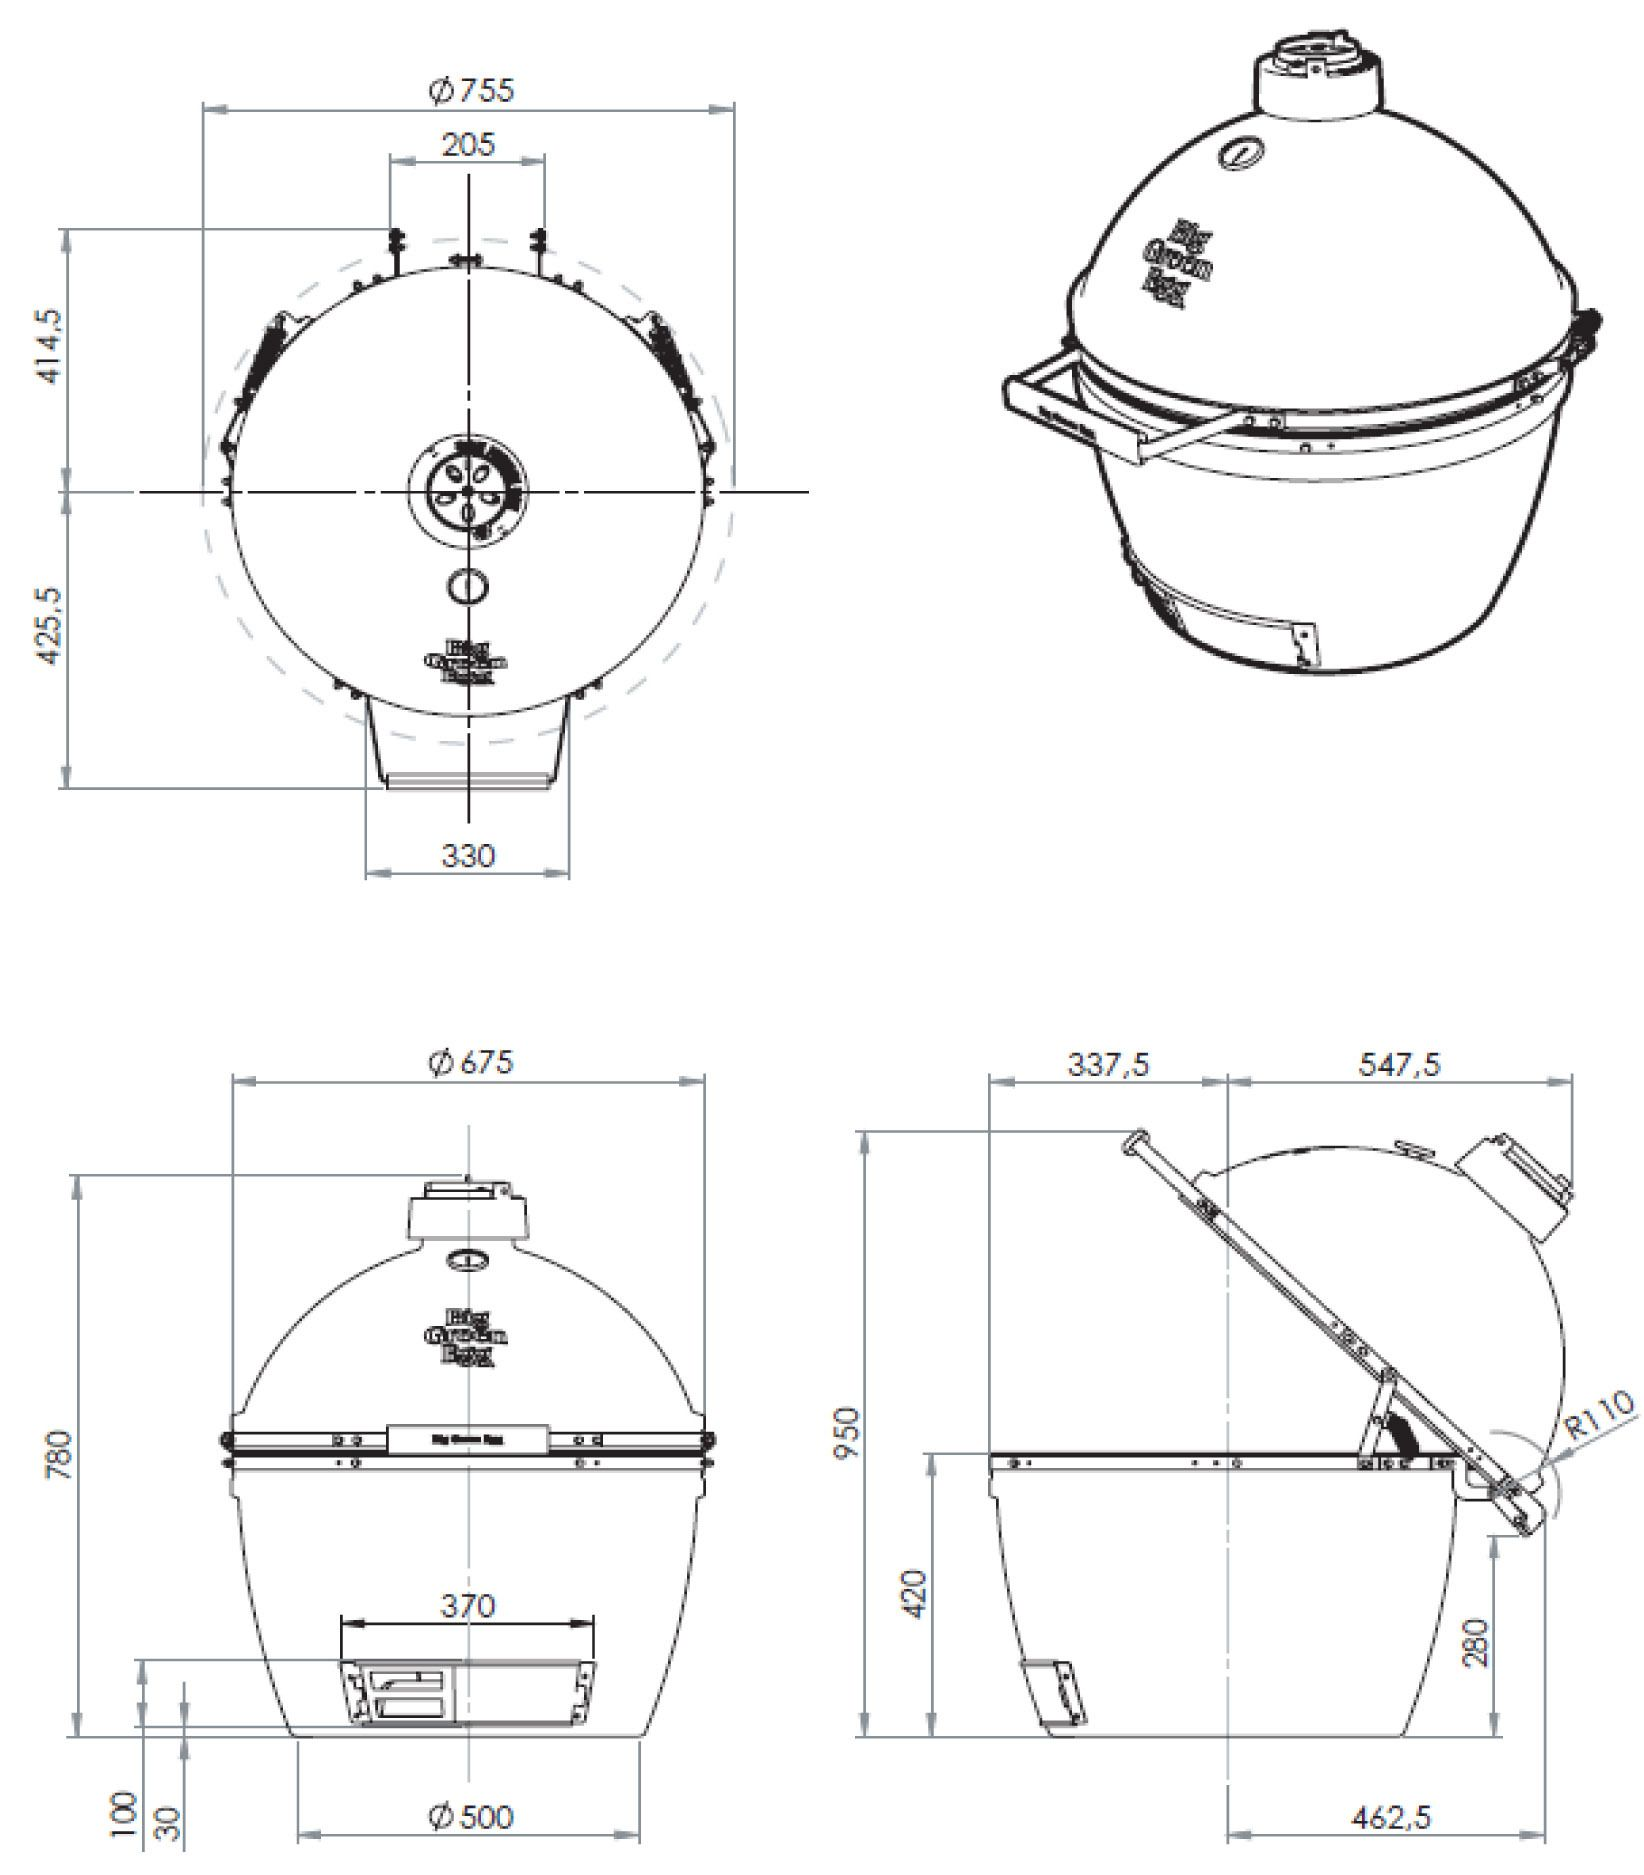 Outdoor Kitchen Dimensions Presented To Your Place Of: Pin By Mark Baer On BBQ/Smoking Meat